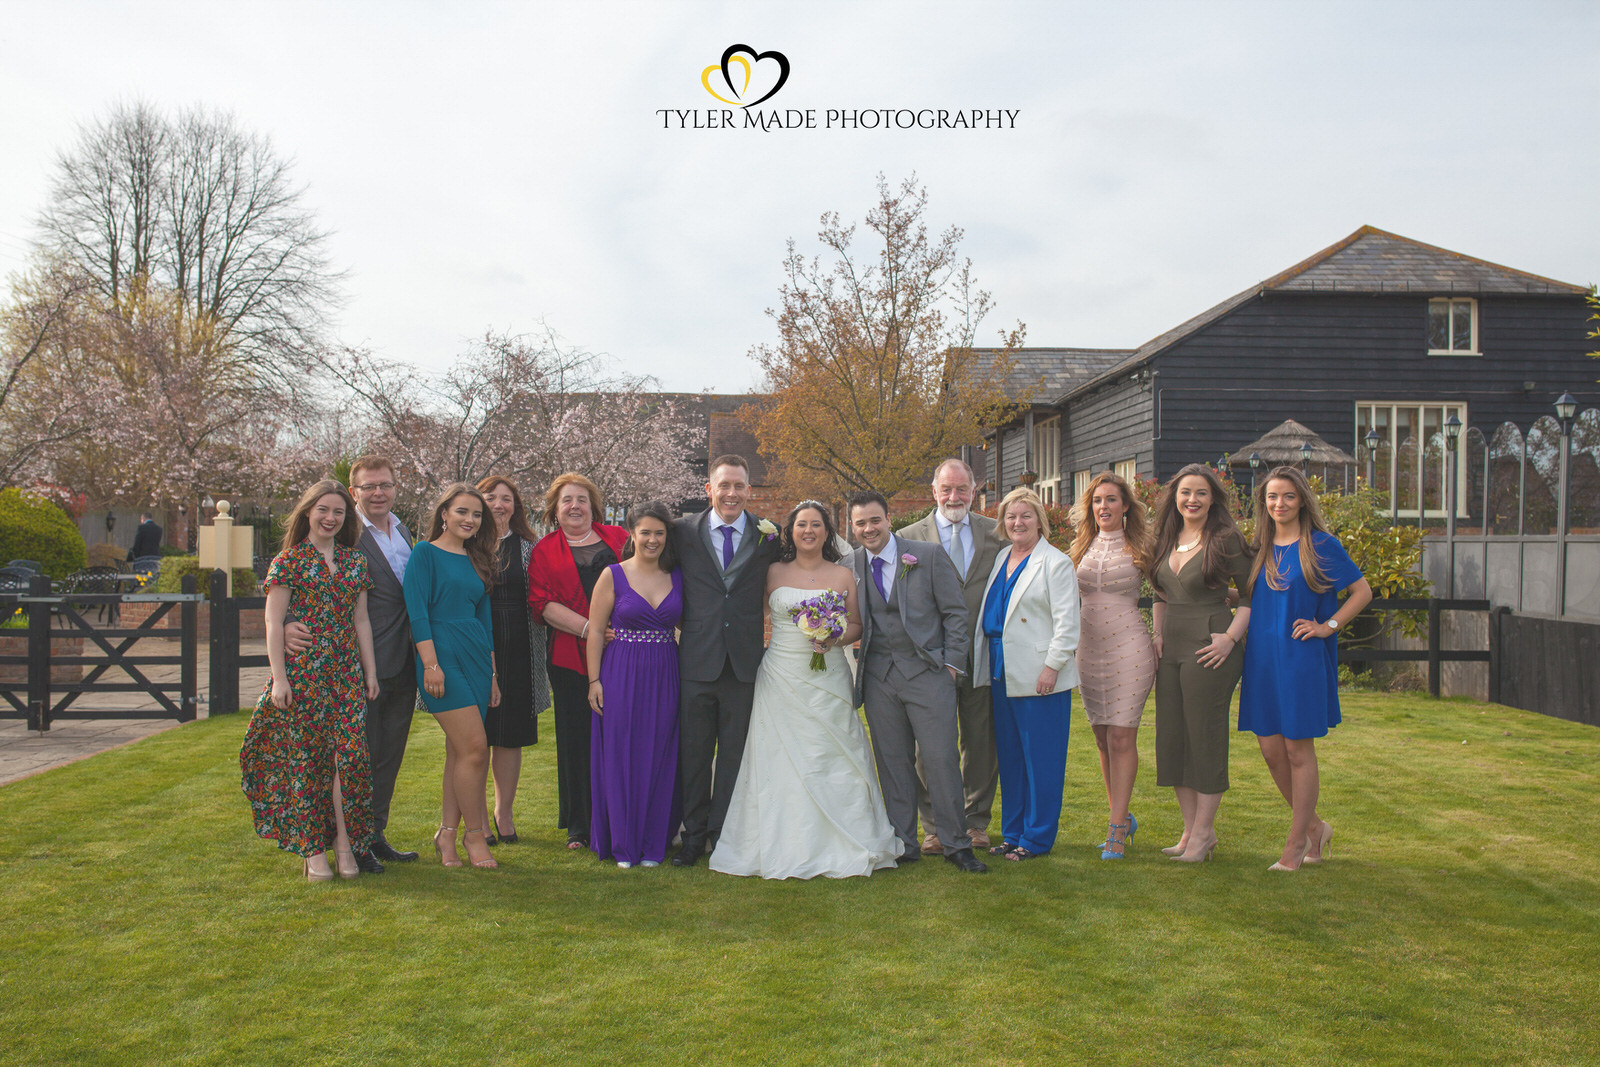 Wedding Guests at The Barn, Upchurch Wedding Venue by Kent Wedding Photographer Tyler Made Photography